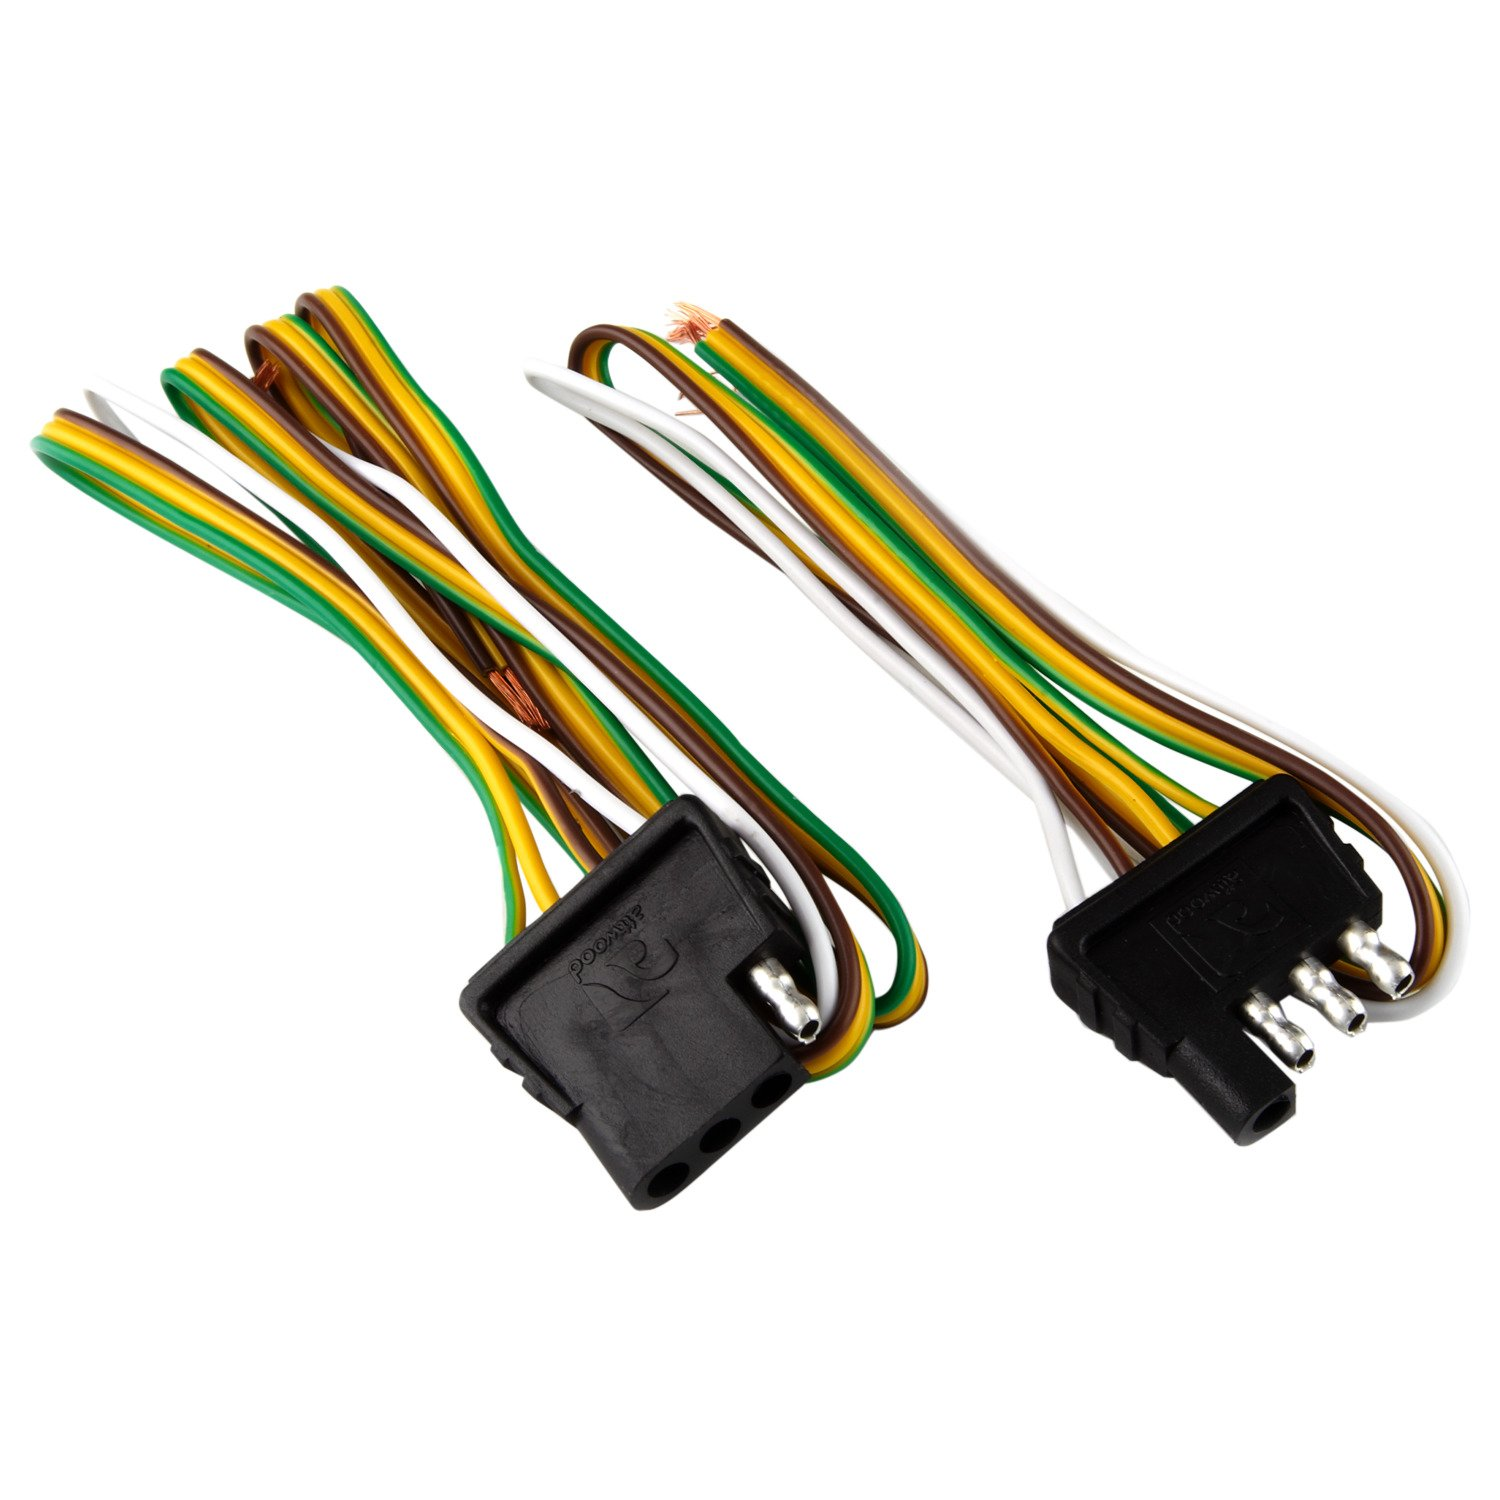 medium resolution of attwood 4 way flat wiring harness kit for vehicles and trailers 4 way flat wiring harness diagram 4 flat wiring harness